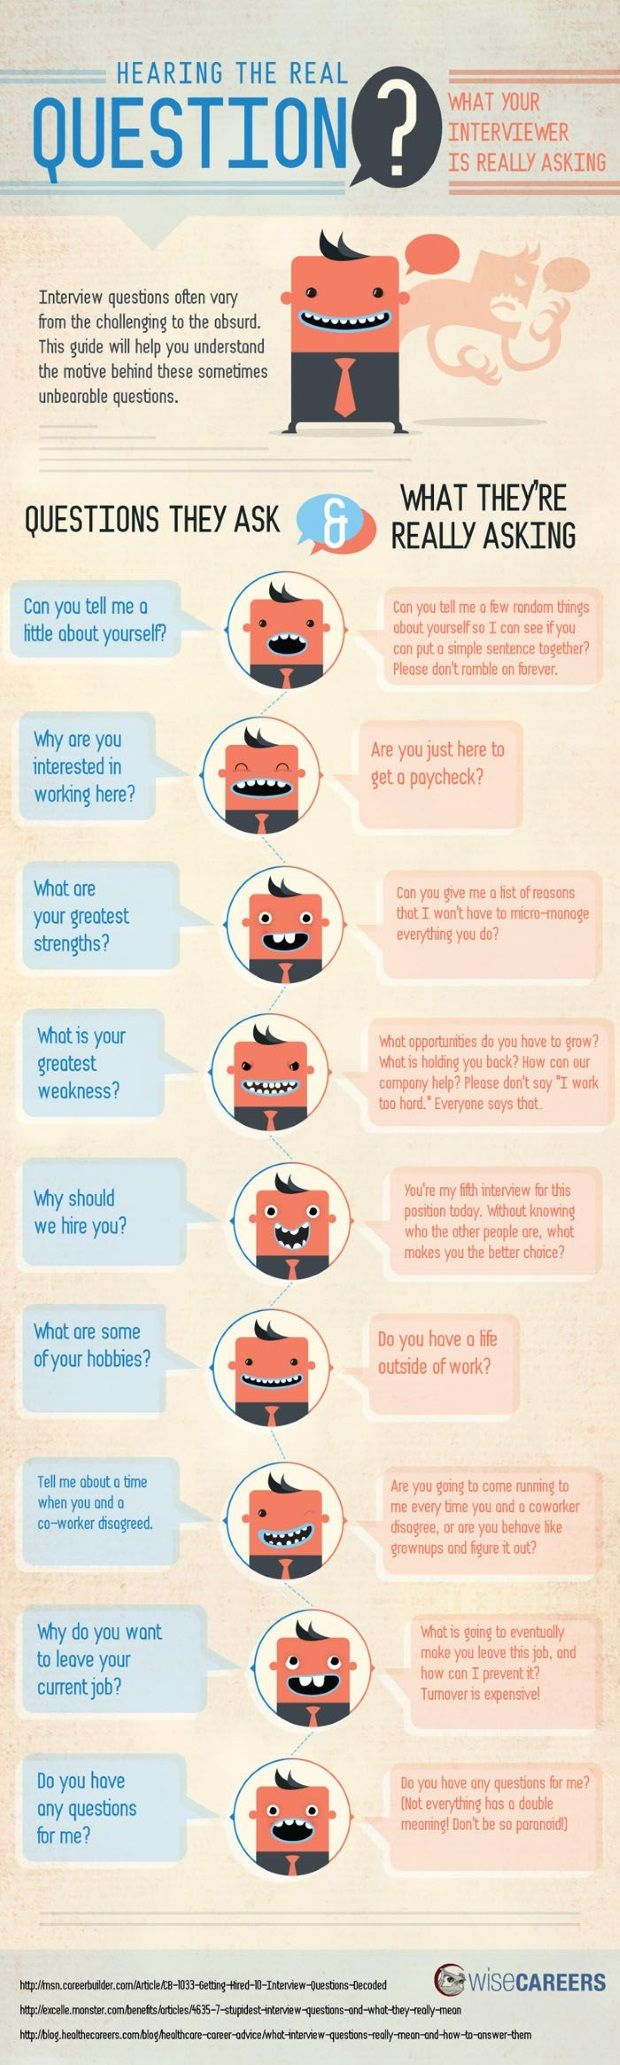 best job interview quotes interview job tough job interview question here s what they are really asking infographic